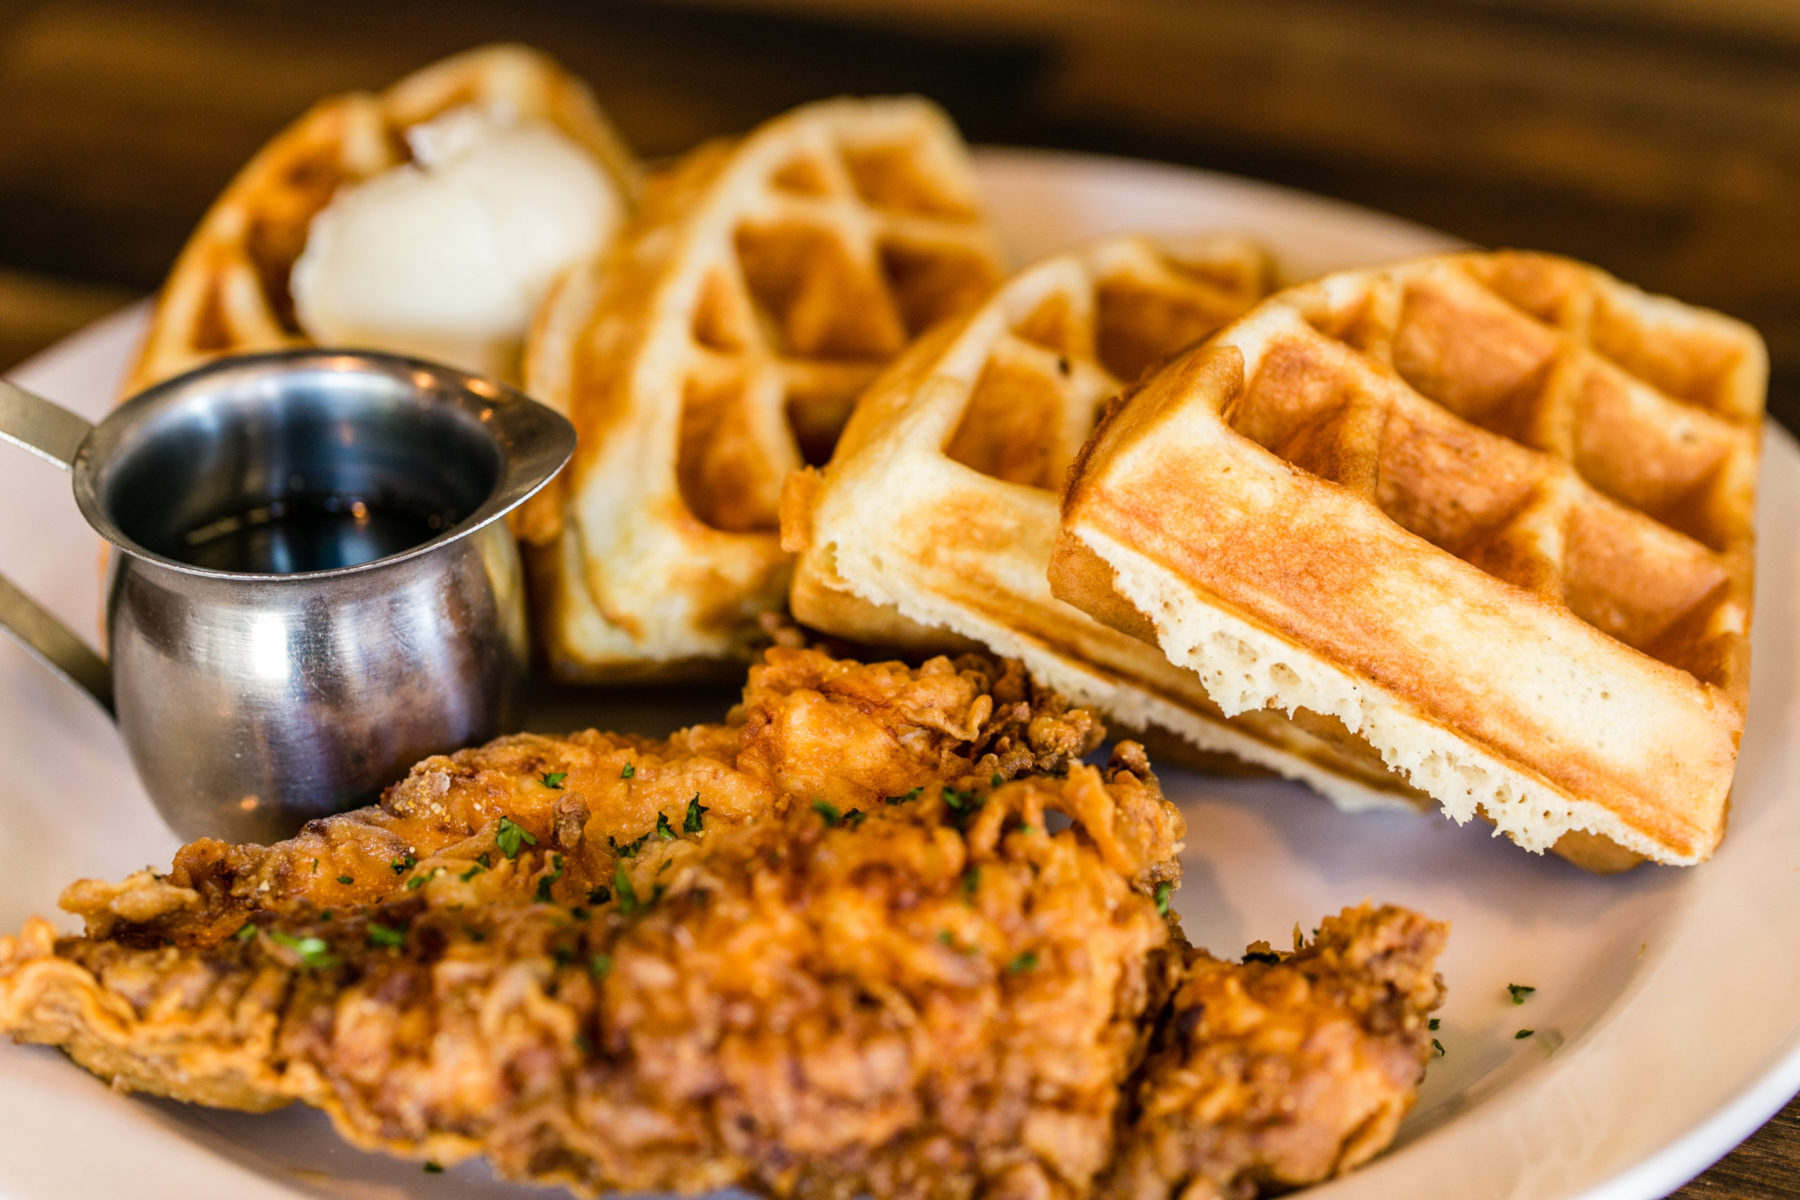 Savory chicken and waffles